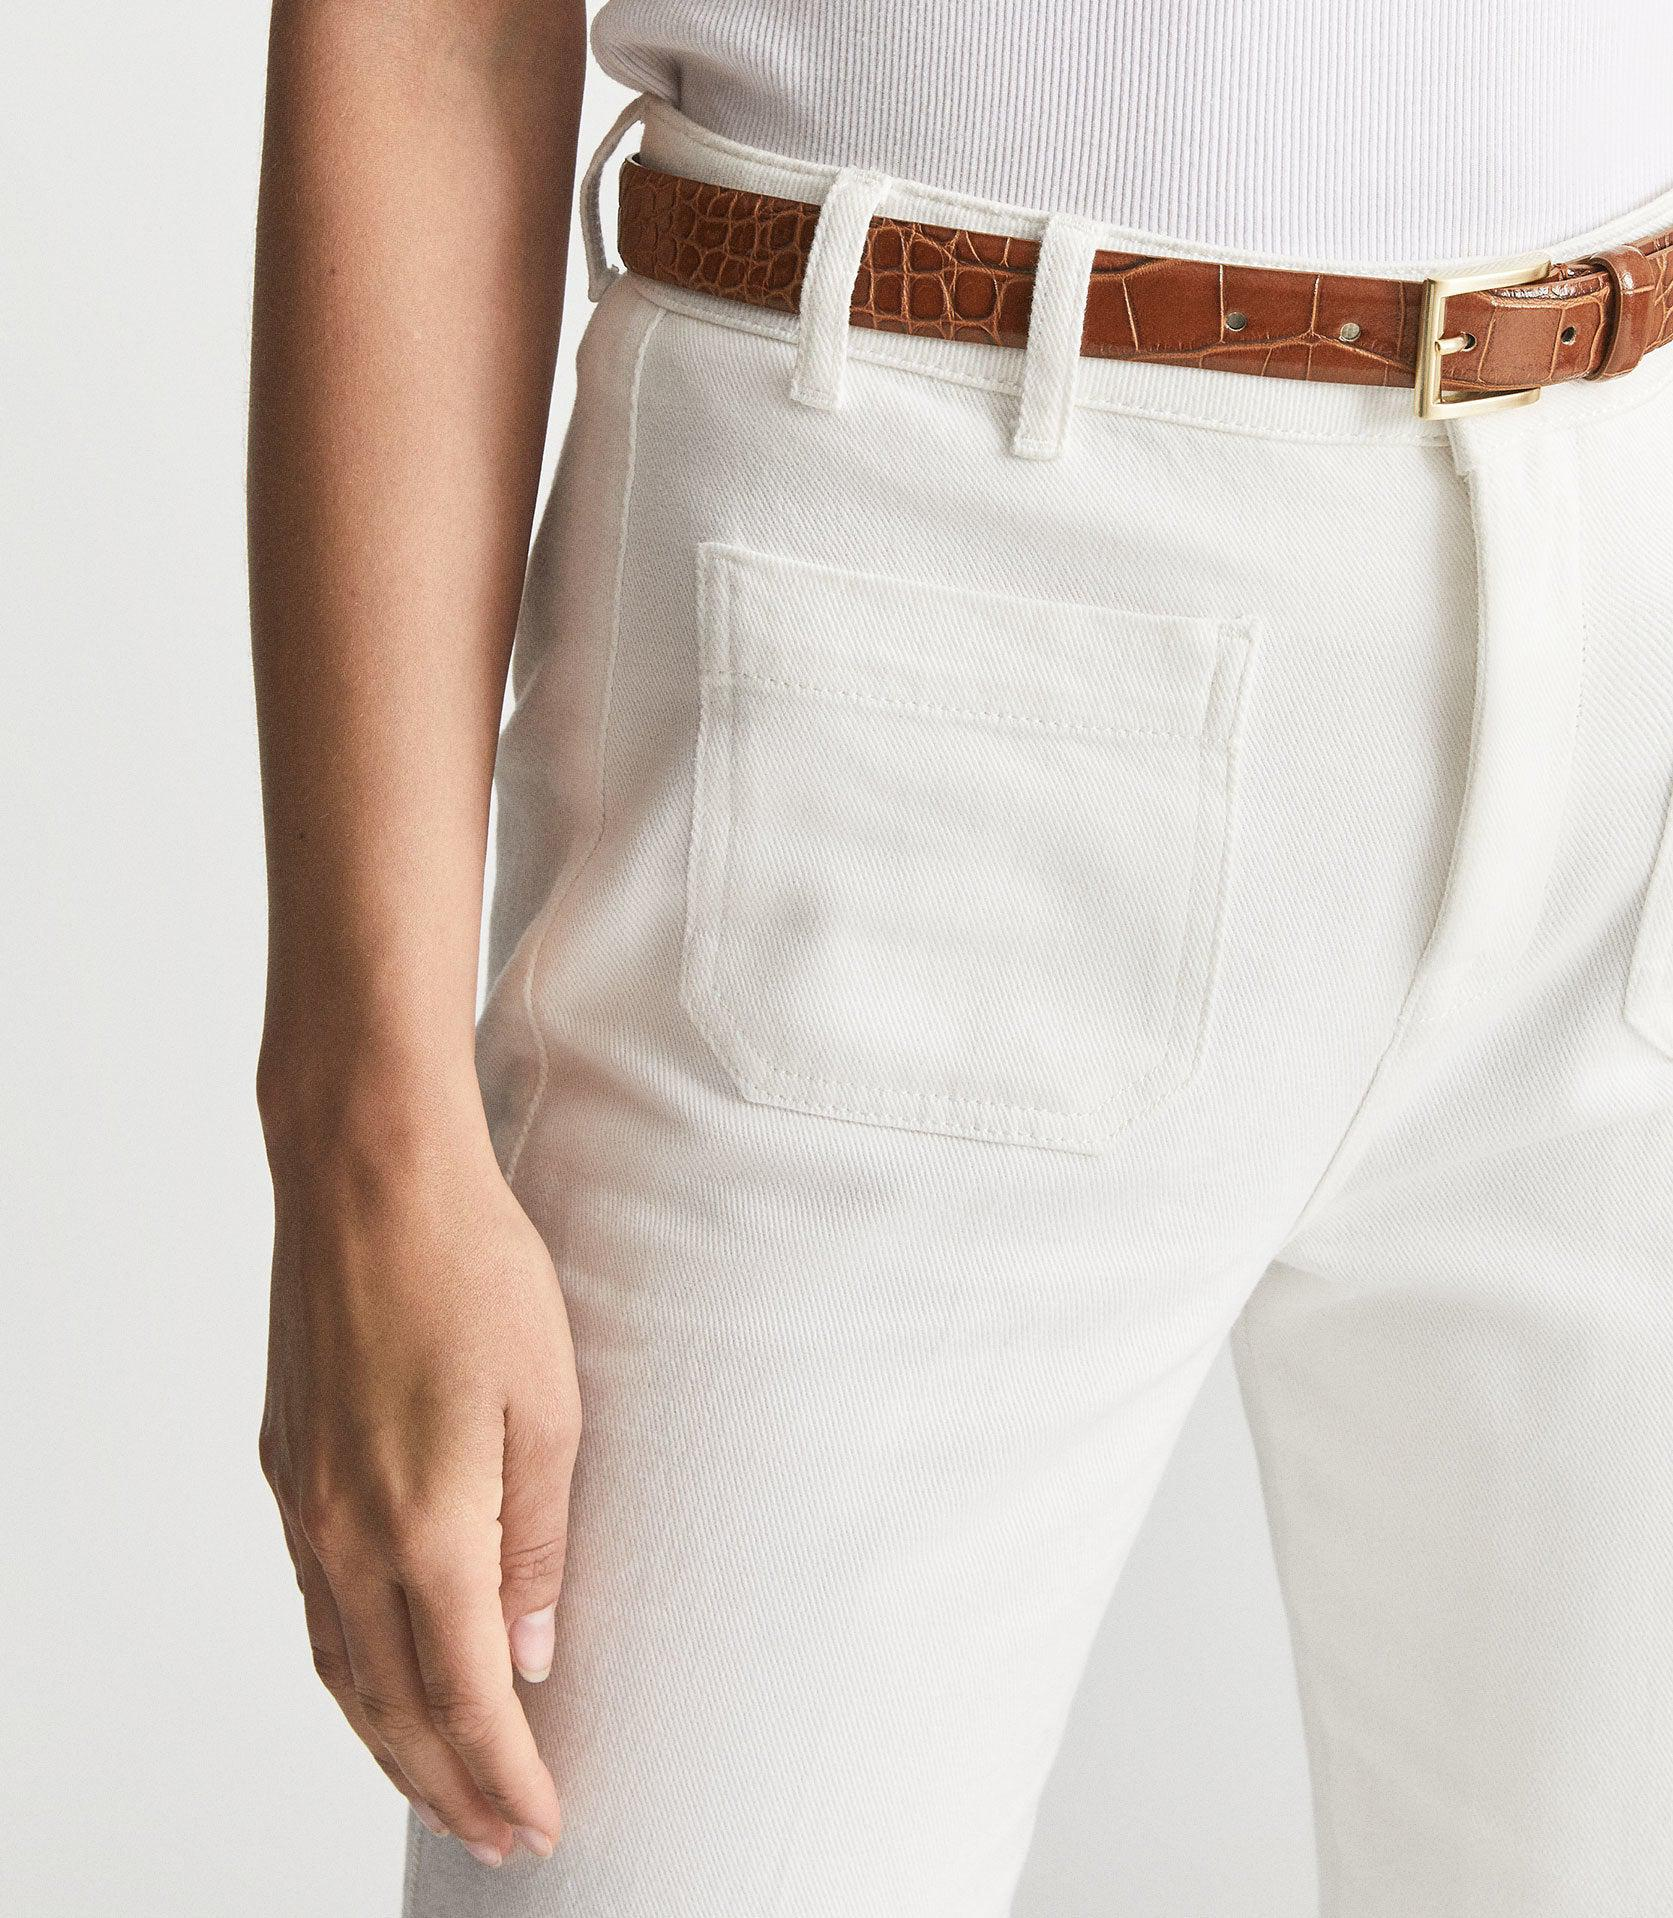 MOLLY - LEATHER CROC EMBOSSED BELT 2